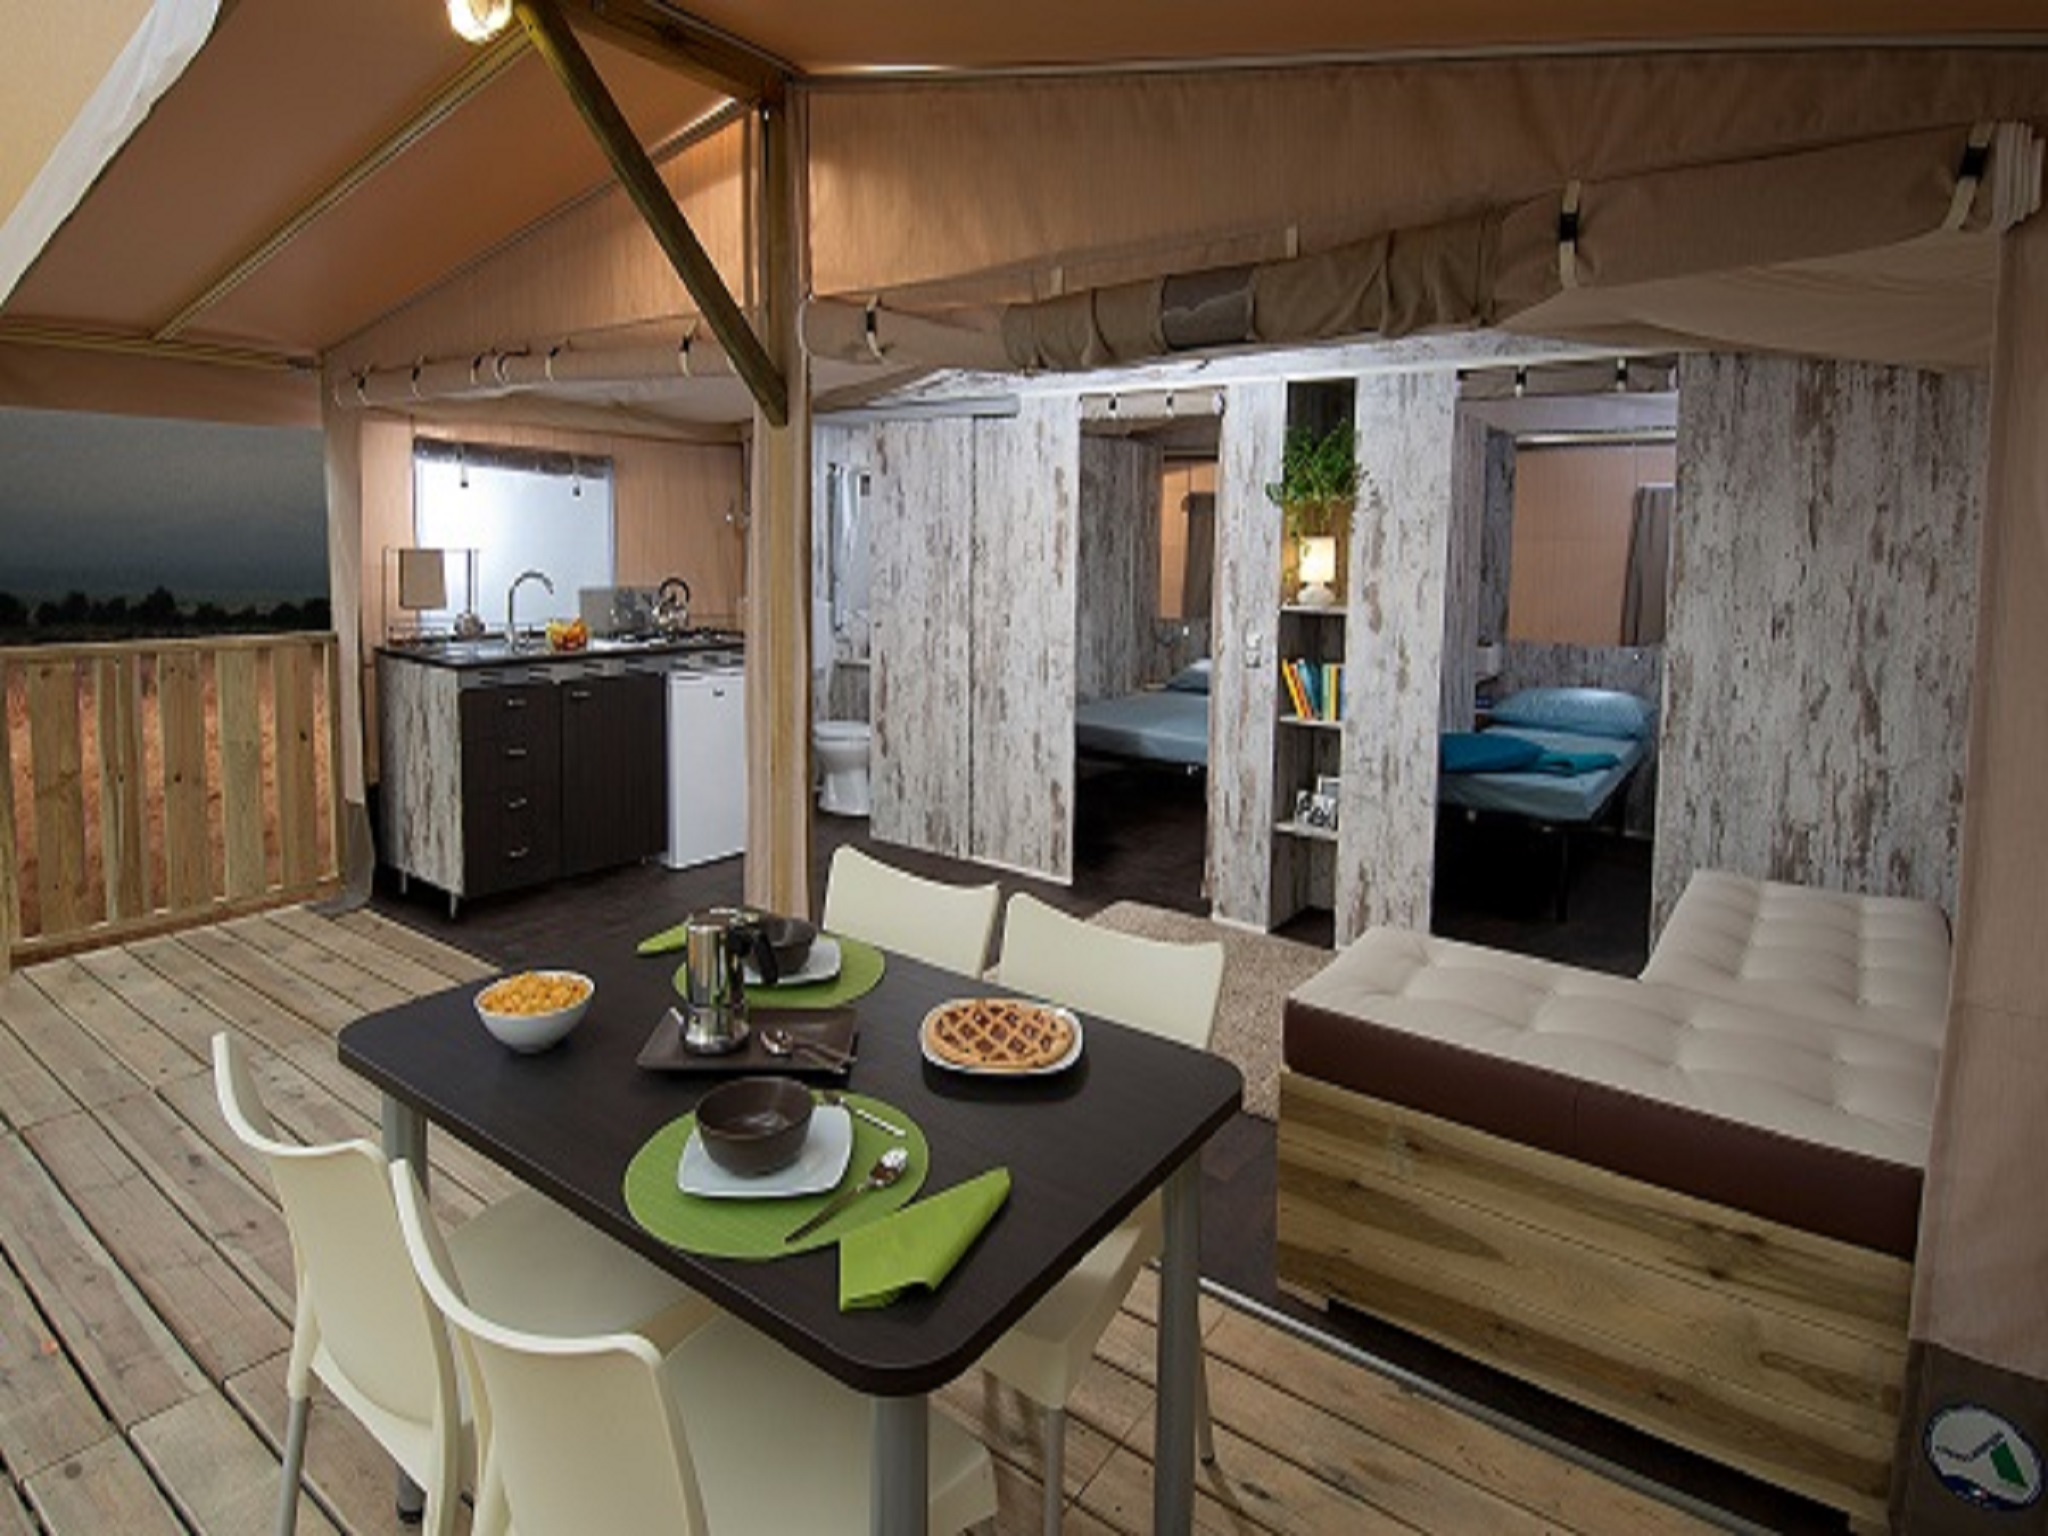 Safari Lodge Tent - Maremma Sans Souci